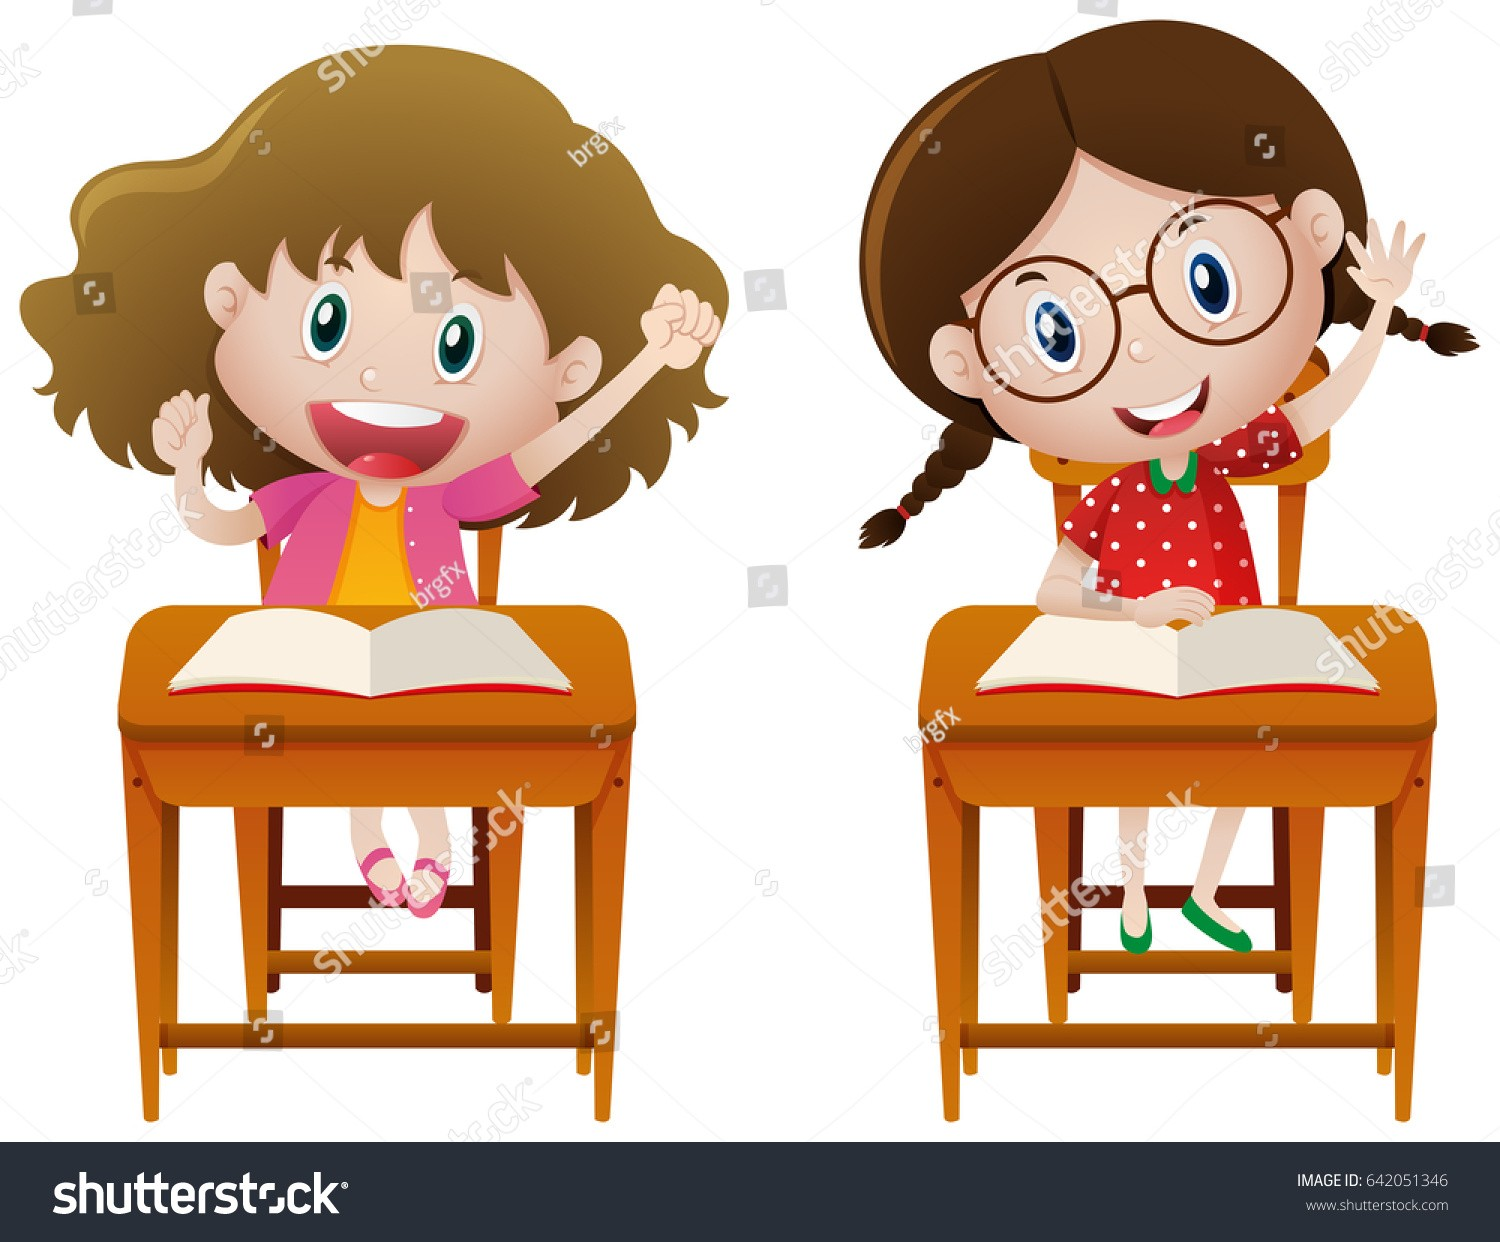 At Clipart Of A Girl Studying Two Girls Class Illustration Stock.